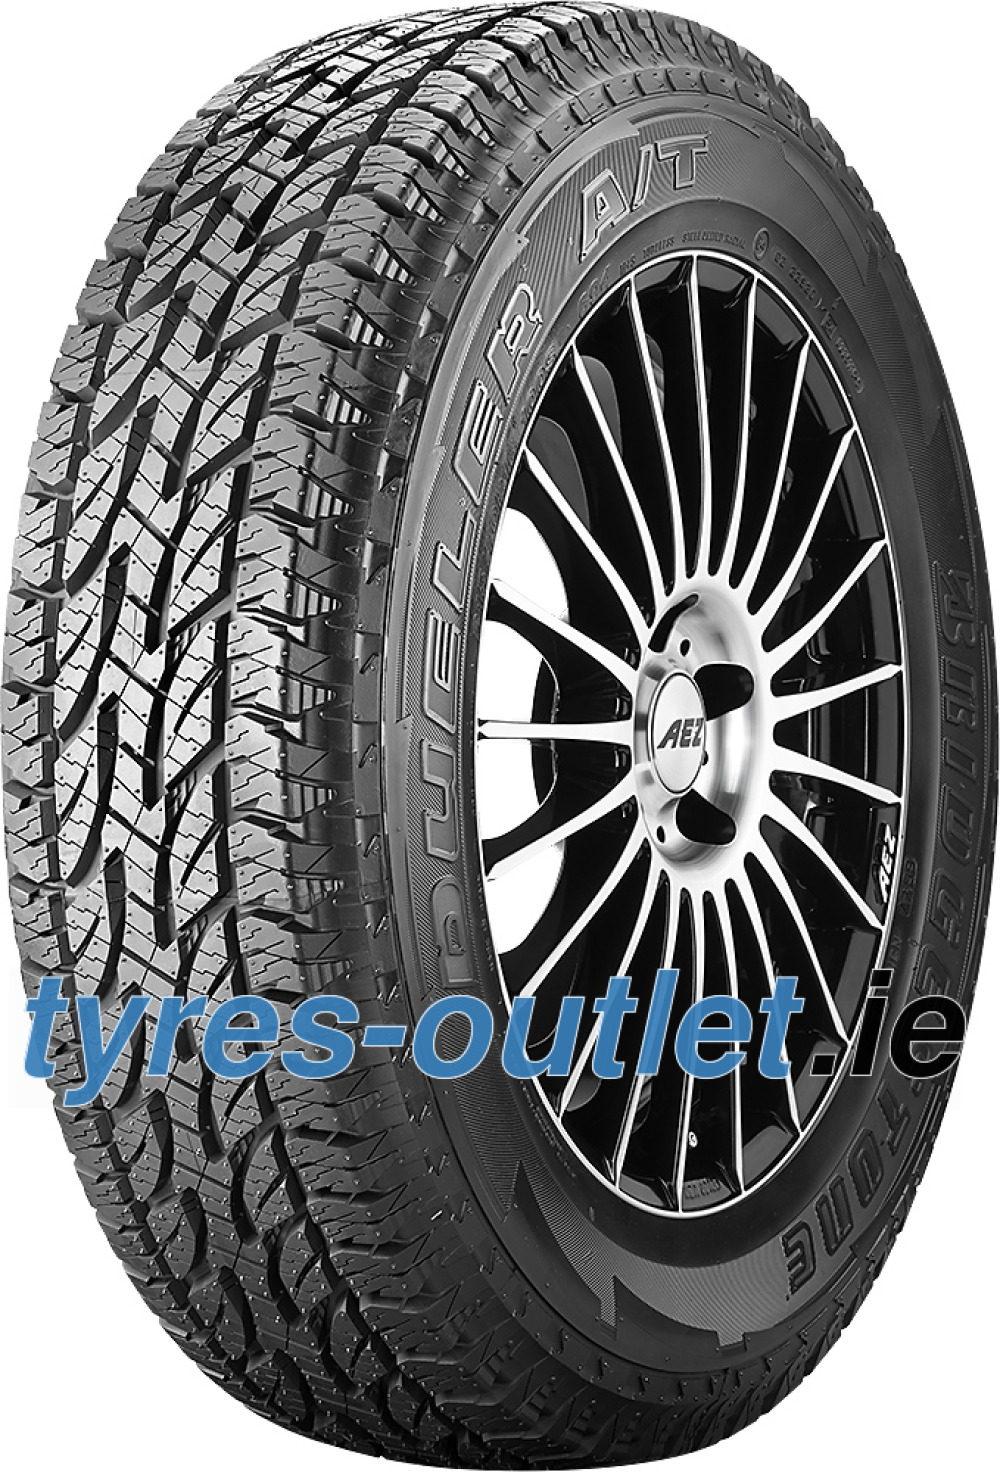 Bridgestone Dueler A/T 694 ( 215/65 R16 98T , with rim protection (MFS) RBL )